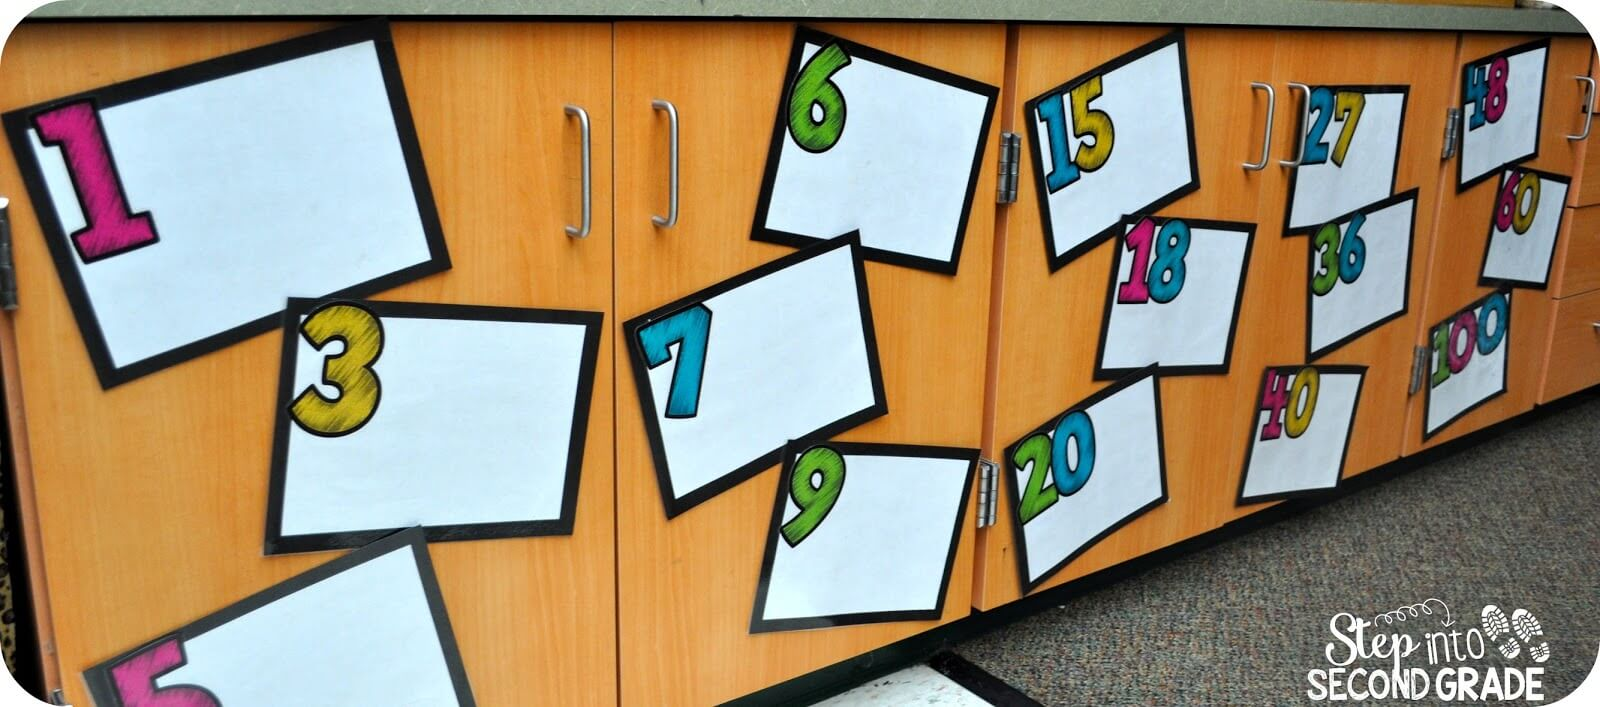 B2s Prep Tracking Ar Points Step Into 2nd Grade